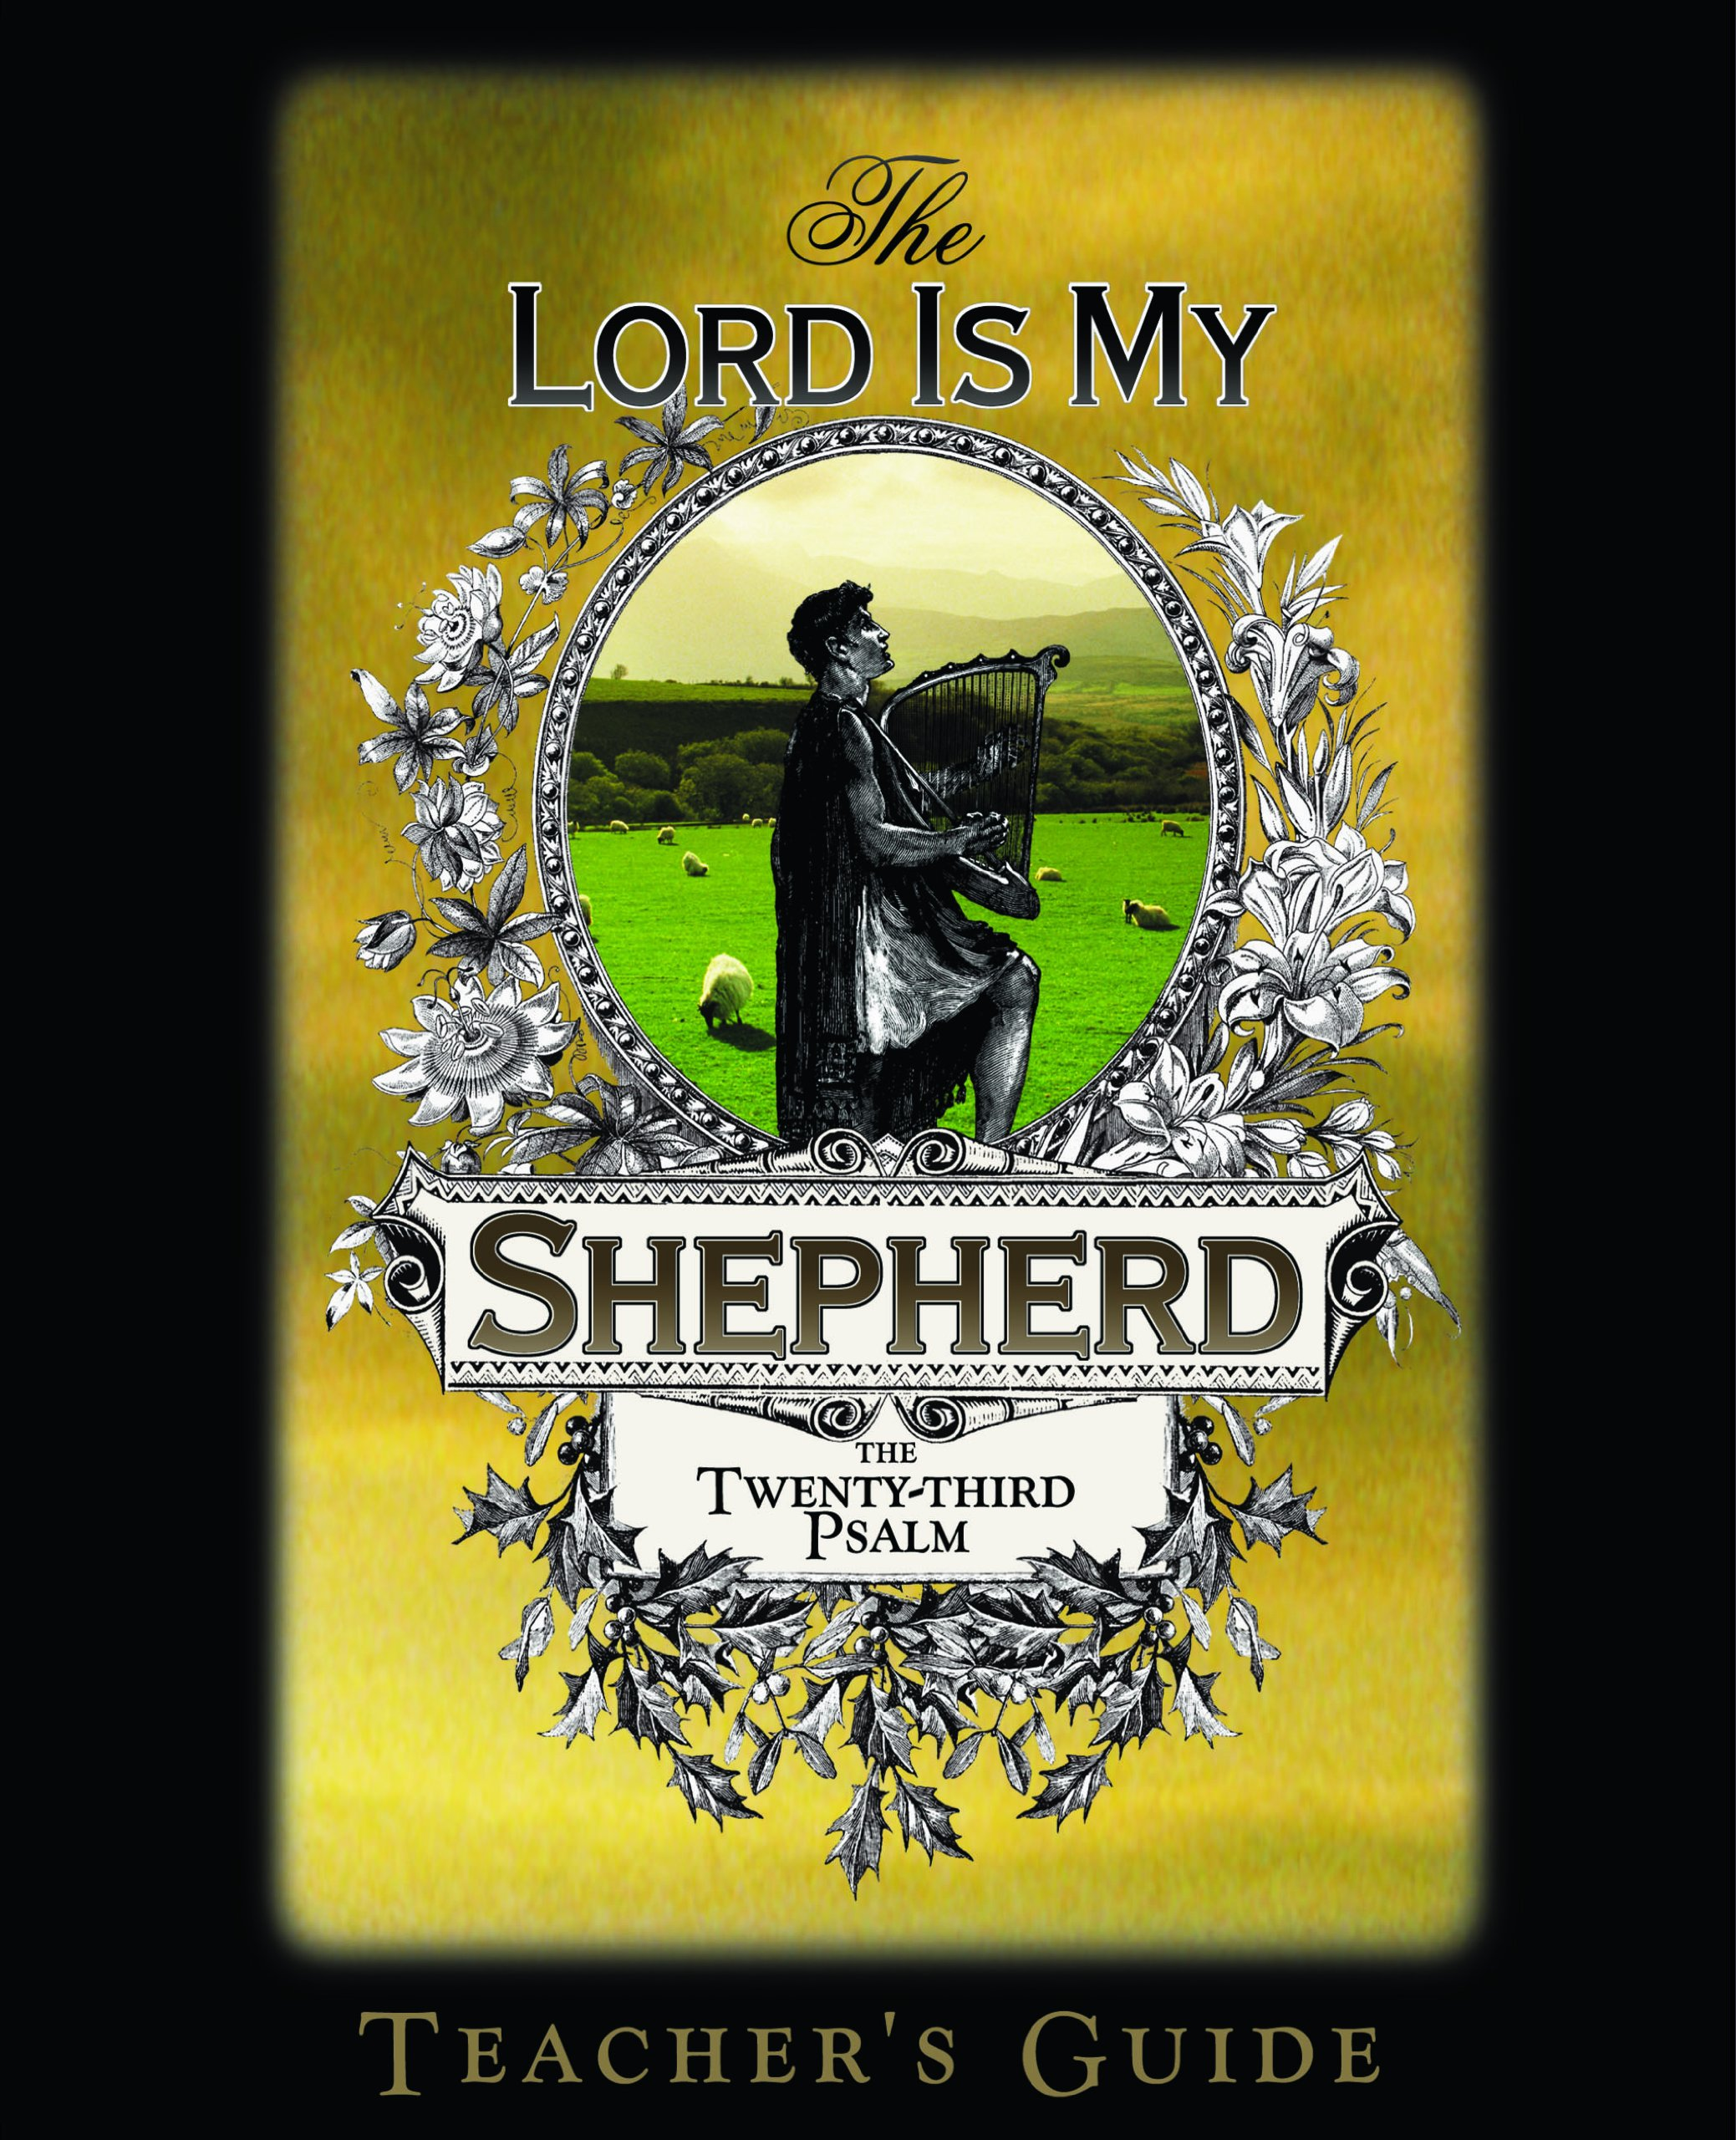 Download The Lord Is My Shepherd: The Twenty-third Psalm, Teacher's Guide (The Lord Is My Shepherd Bible Study Series, Teacher's Guide) pdf epub